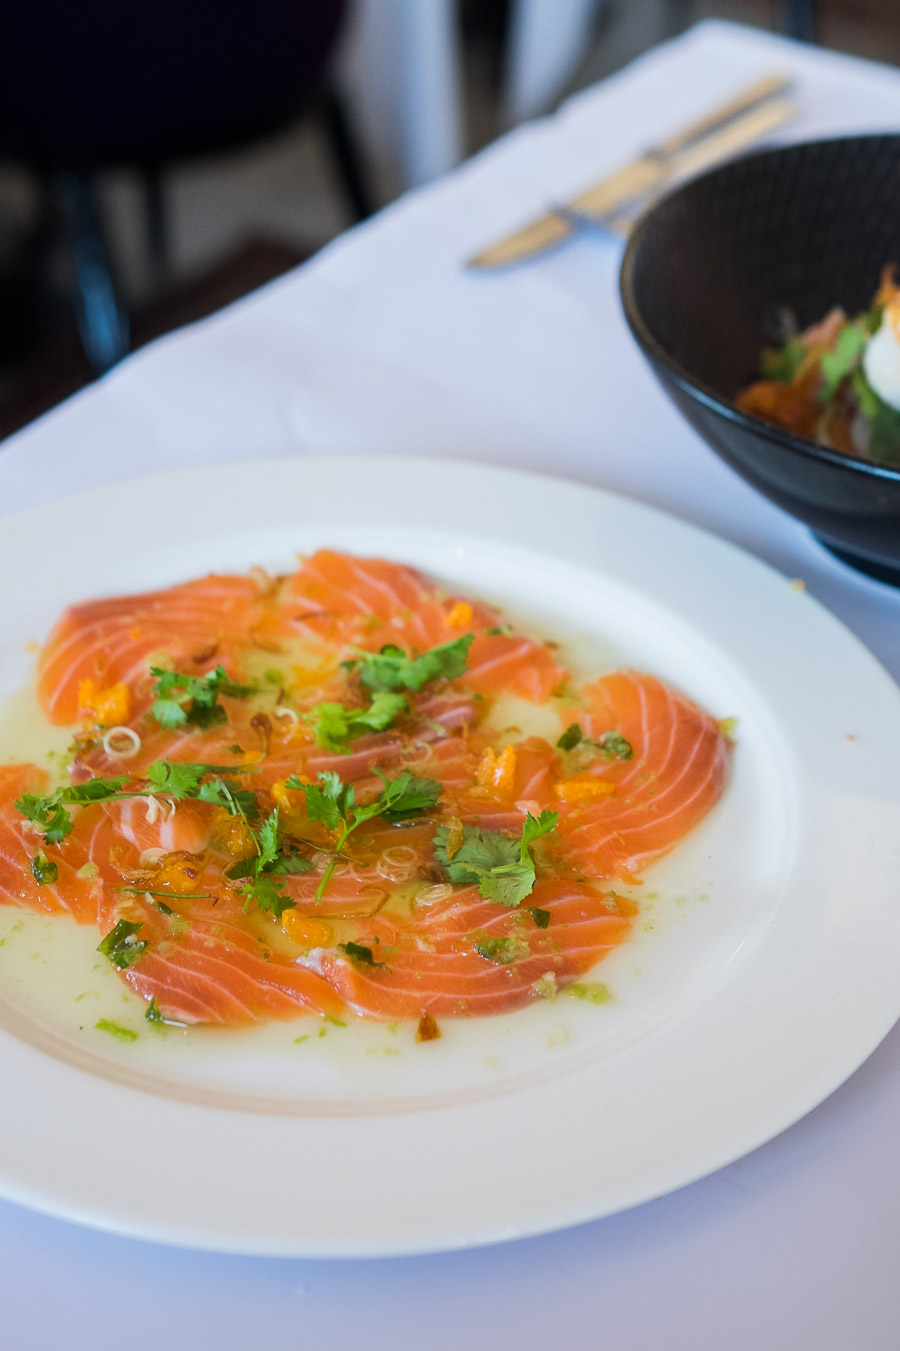 Salmon sashimi with mandarin, crispy garlic, coriander, green chilli nahm jim